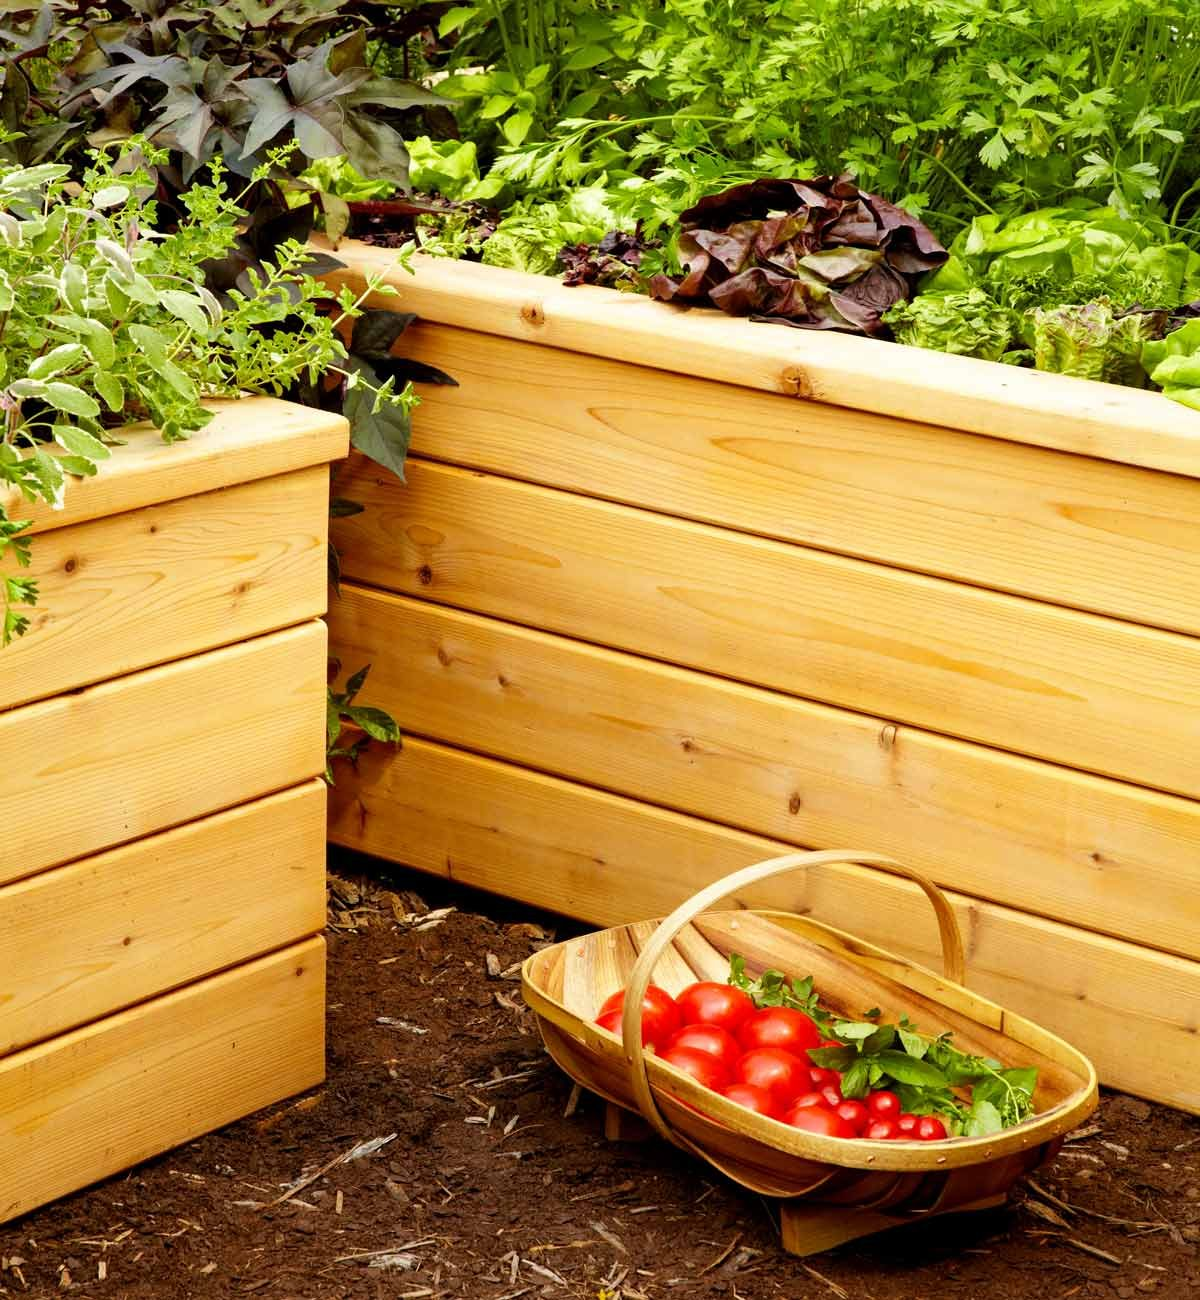 Make Self Watering Planters Build Self Watering Planters The Family Handyman